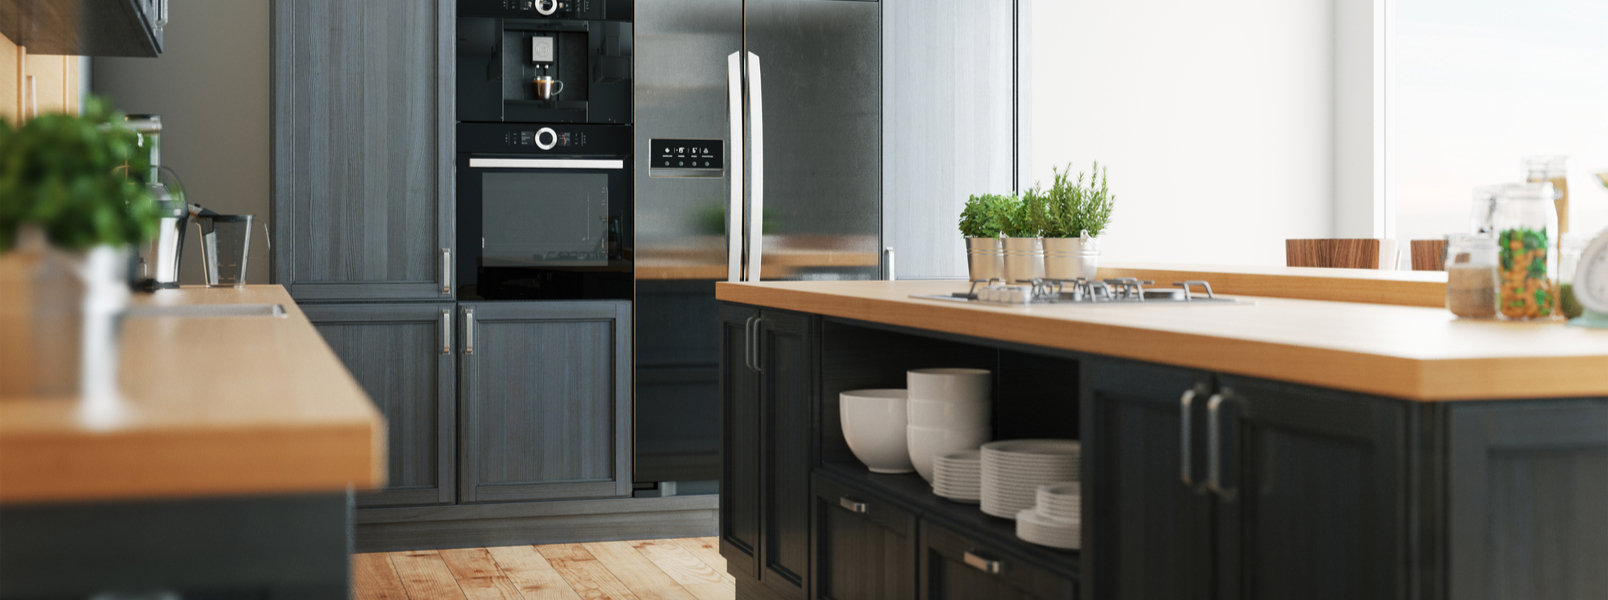 Types Of Kitchen Cabinets Beloved Materials And Their Prices